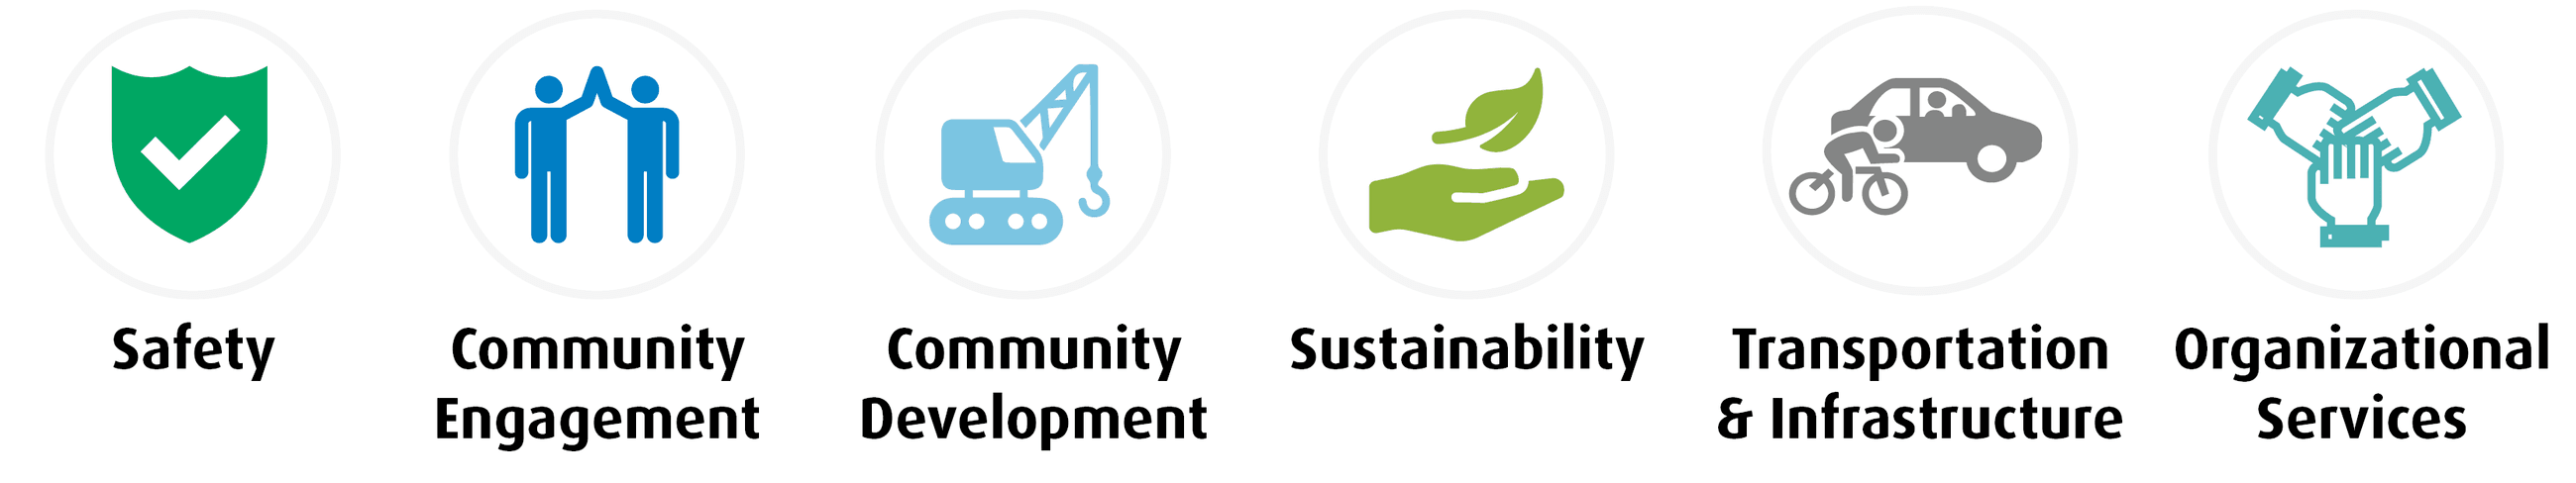 Icons for safety, engagement, development, sustainability, infrastructure and services